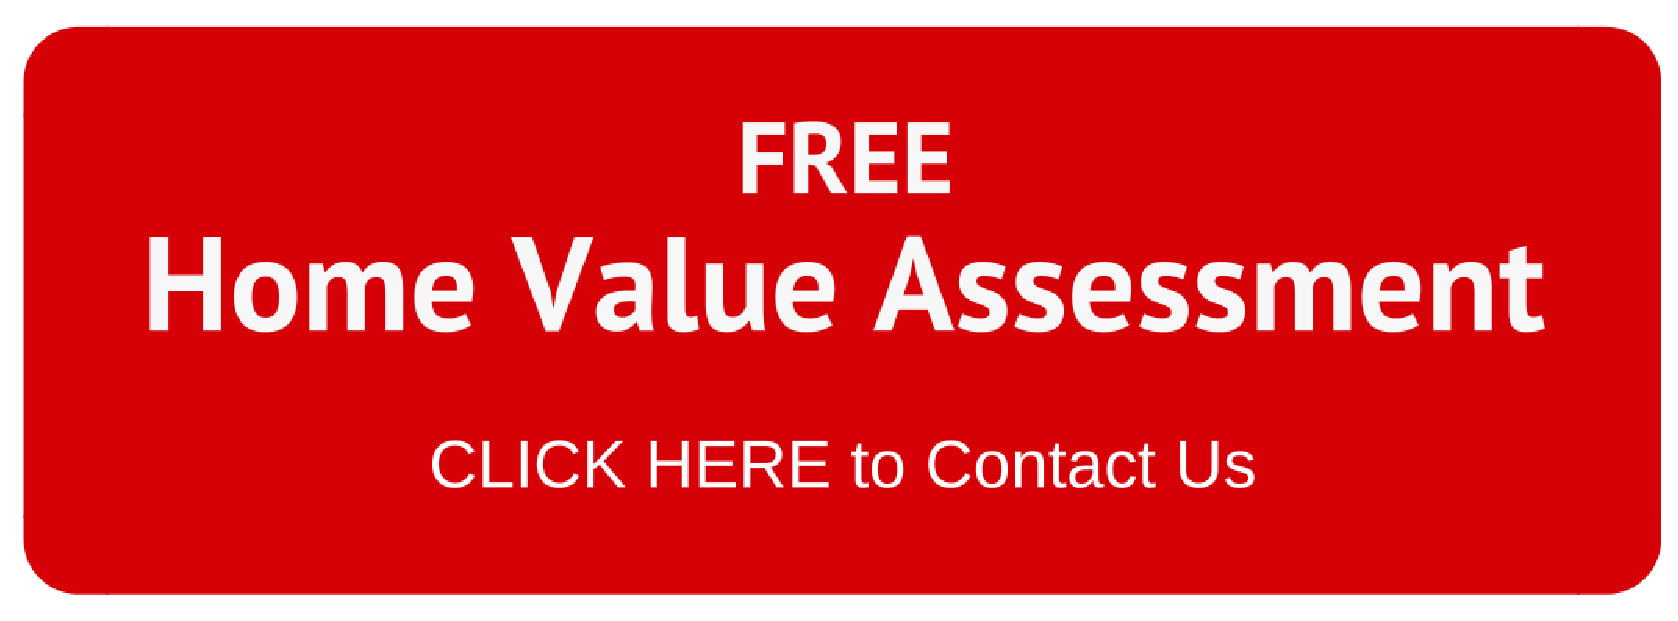 FREE Home Value Assessment